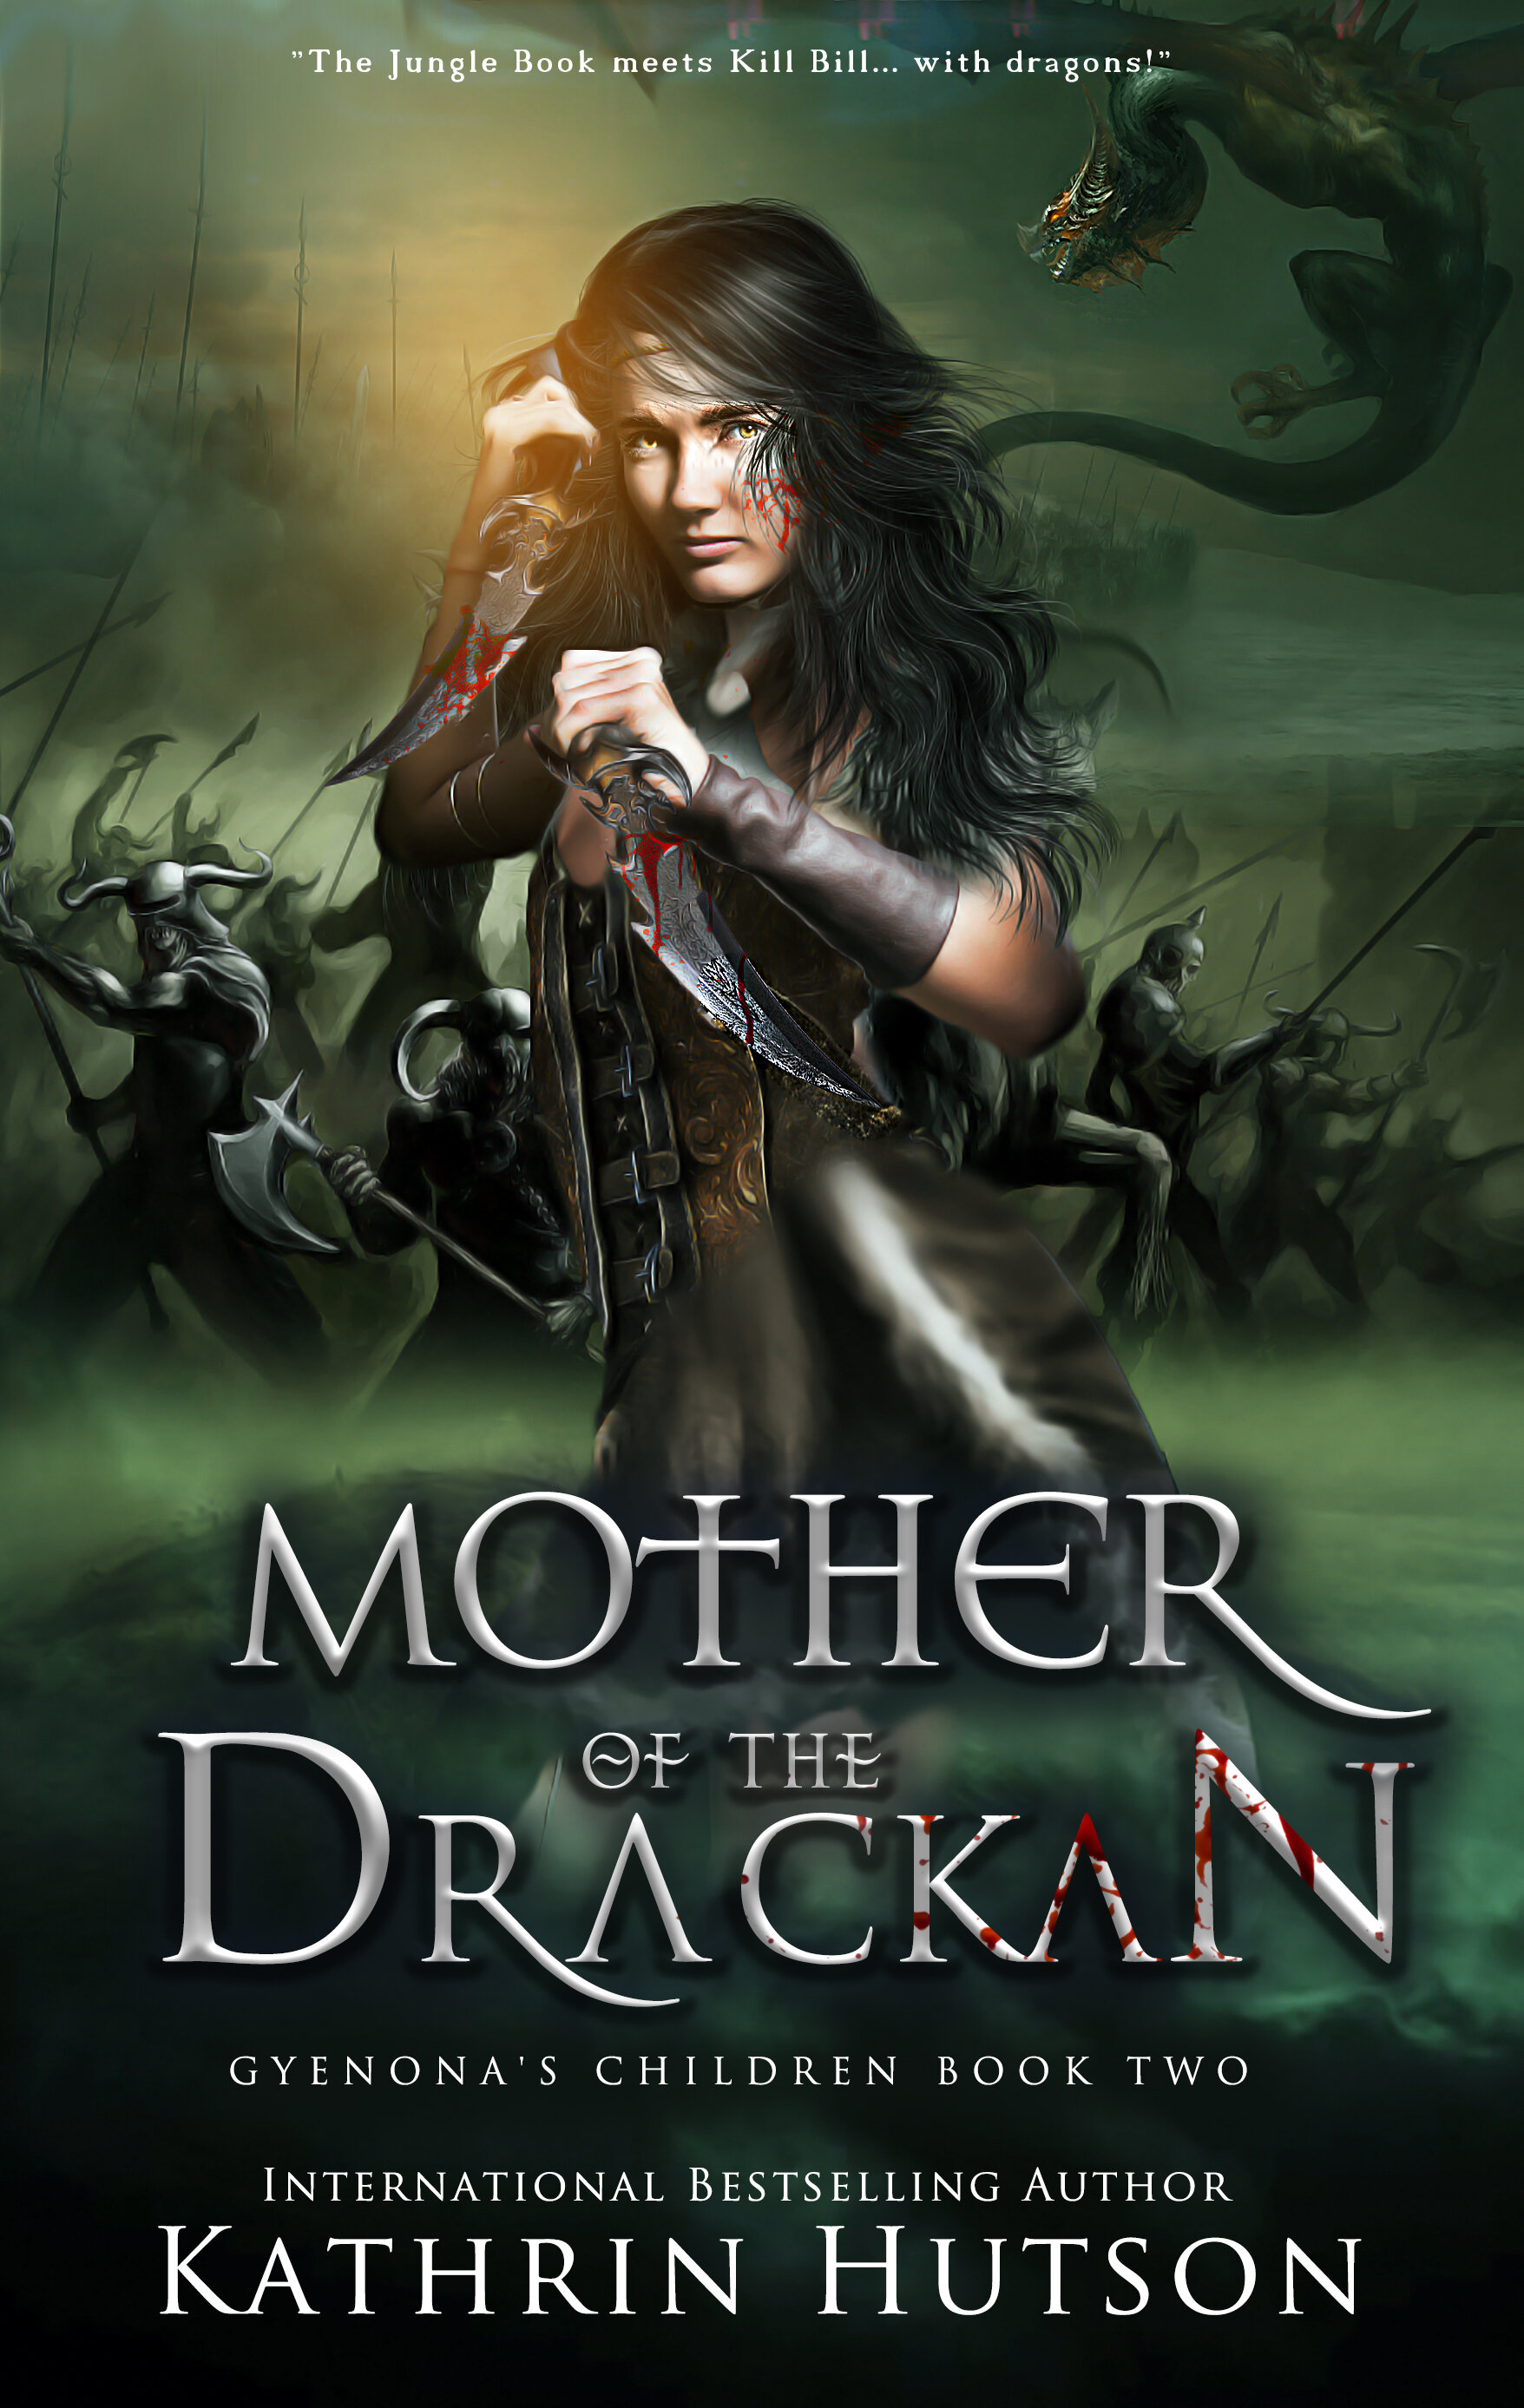 Mother of the Drackan Ebook Cover THE ONE.jpg